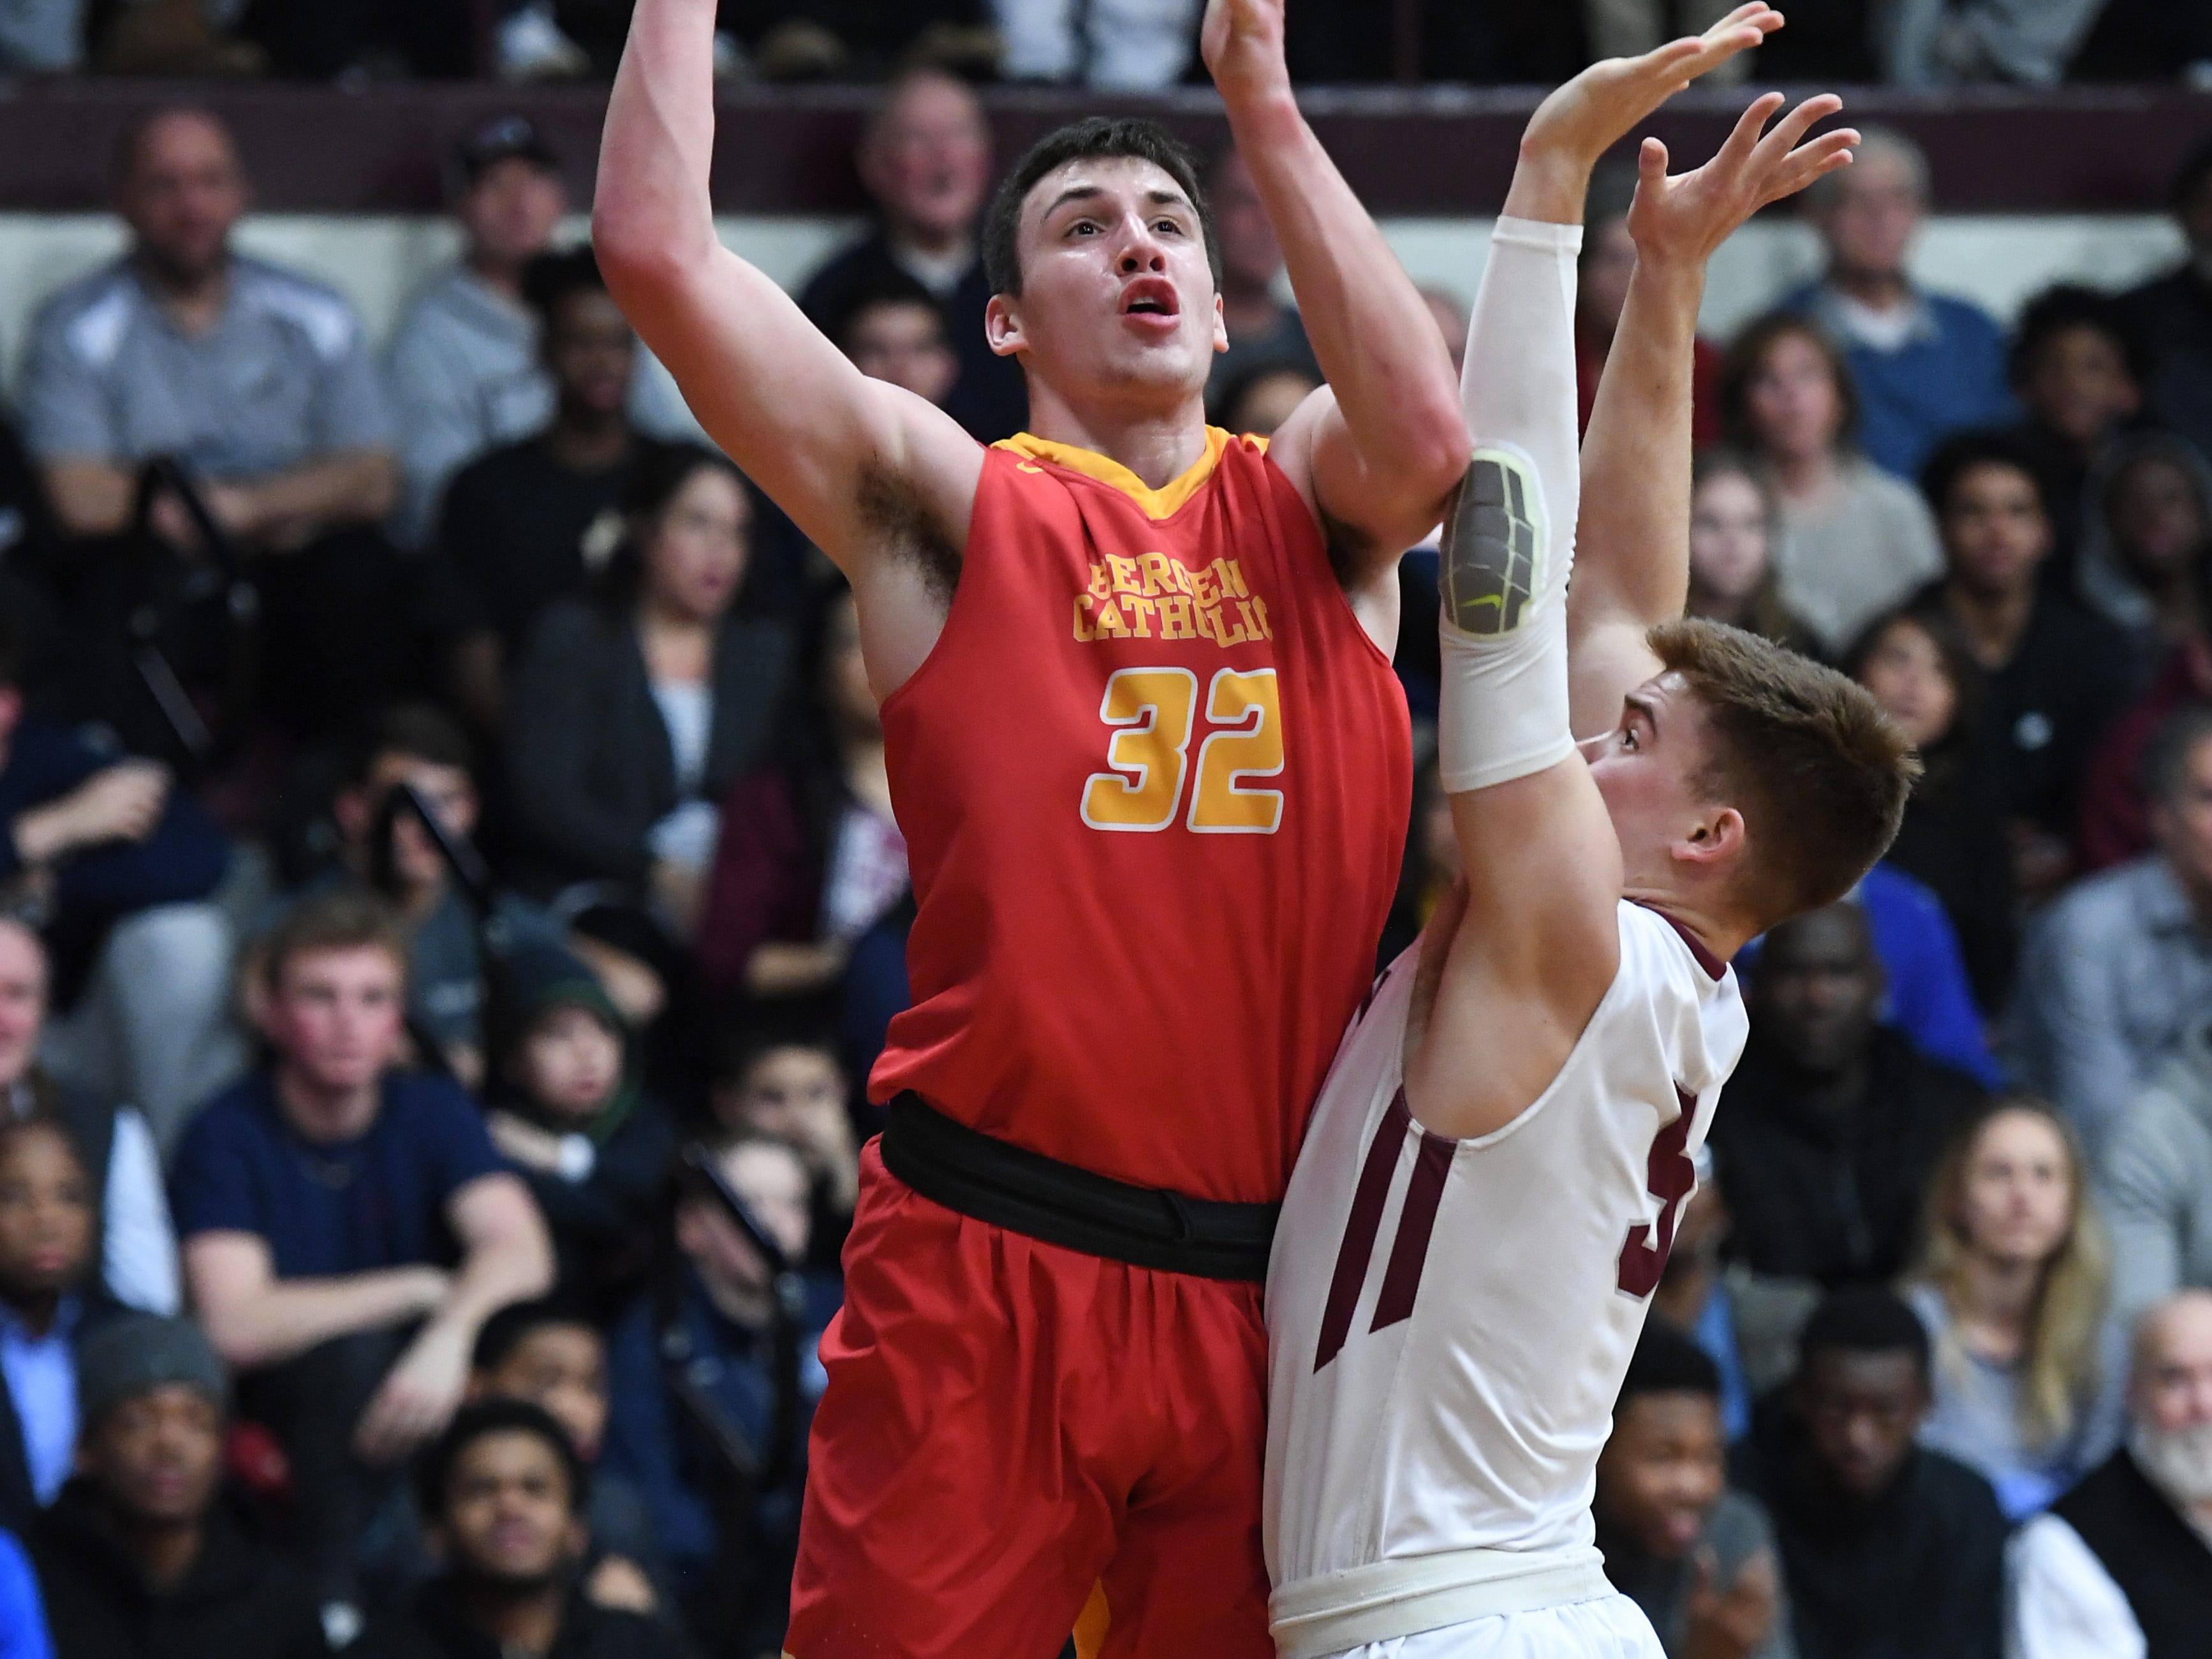 Bergen Catholic basketball at Don Bosco in Ramsey on Thursday, January 17, 2019. BC #32 Zach Freemantle drives to the basket.